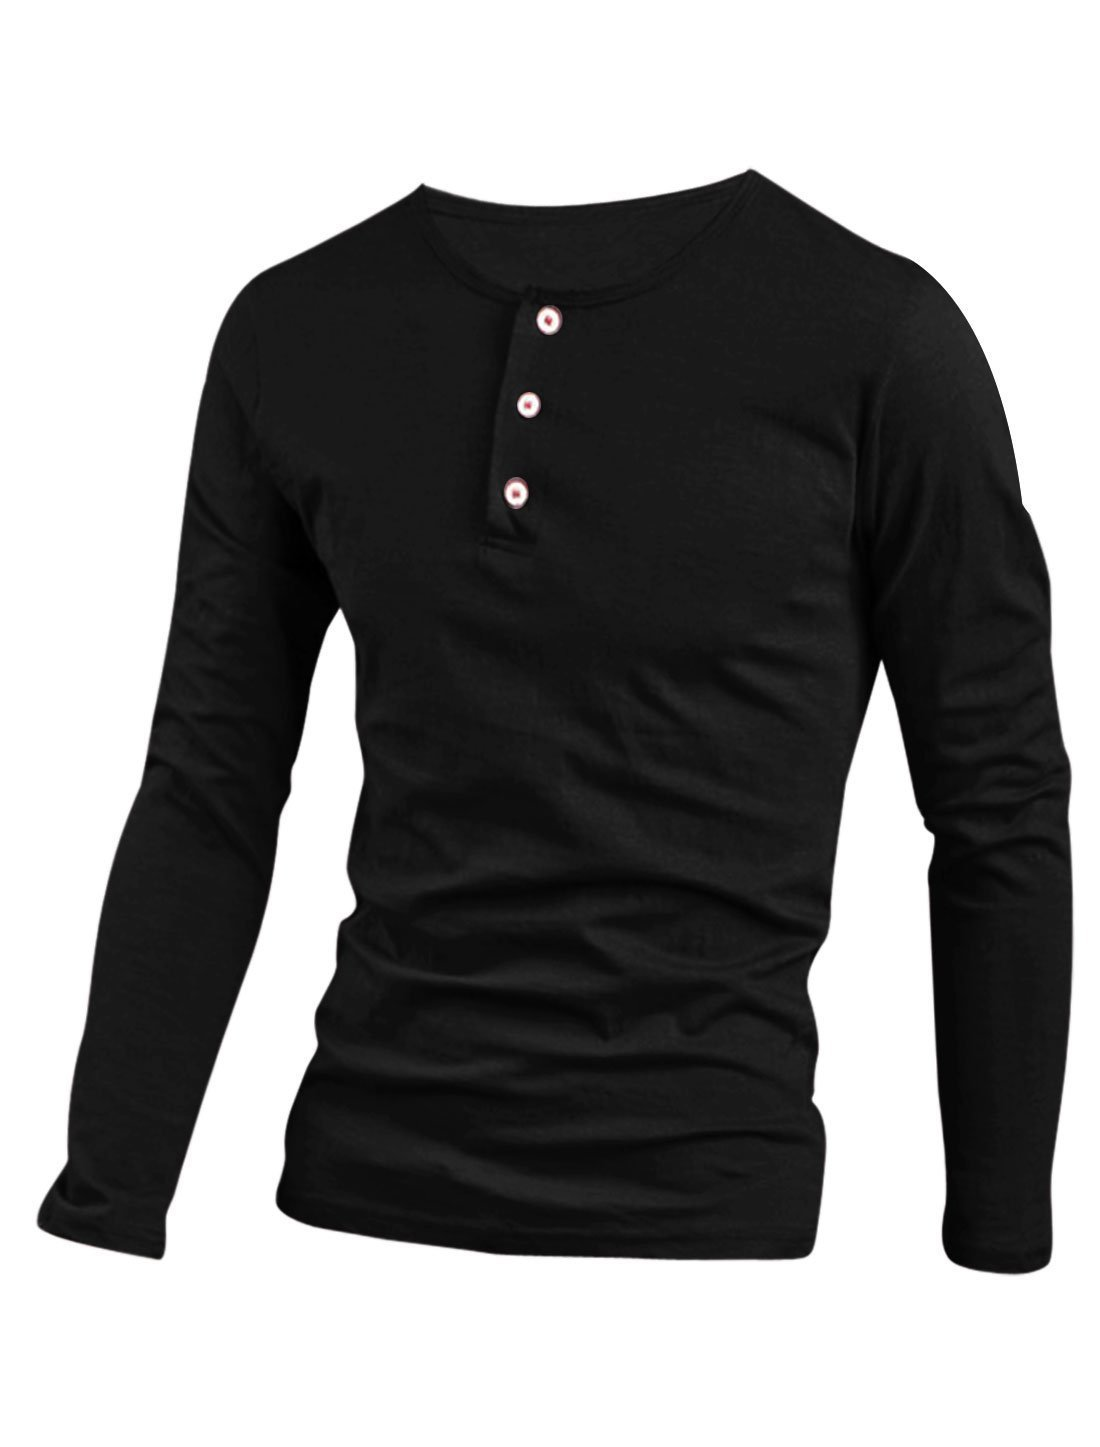 uxcell Men Casual Slim Fit Tunic Button Down Long Sleeve Henley Tee T Shirts g14080100ux0003